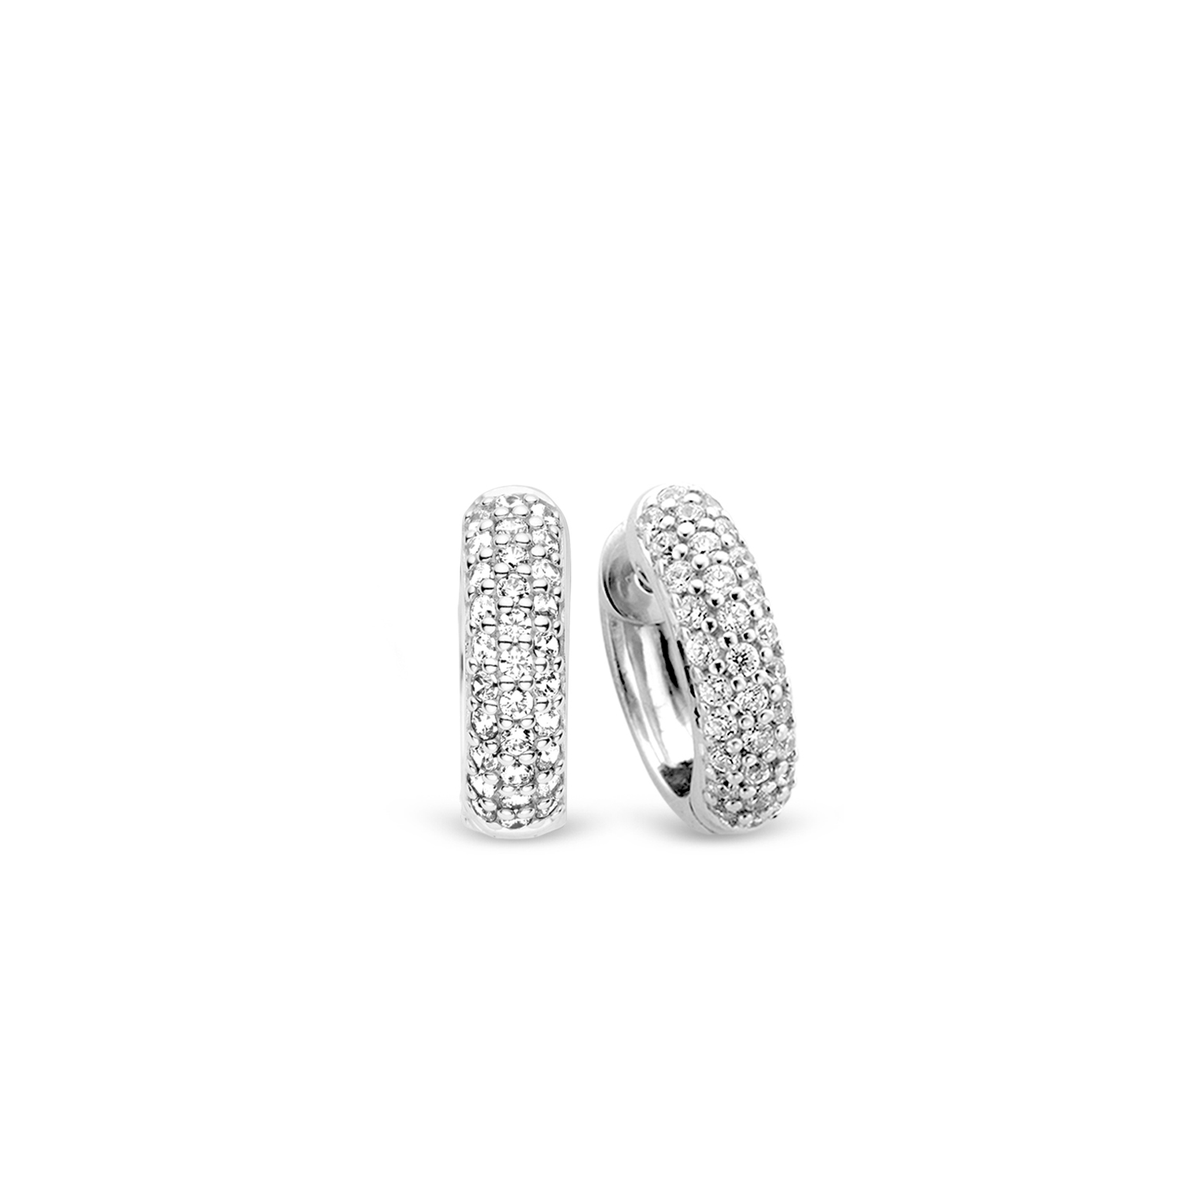 TI SENTO - Milano Earrings 7225ZI